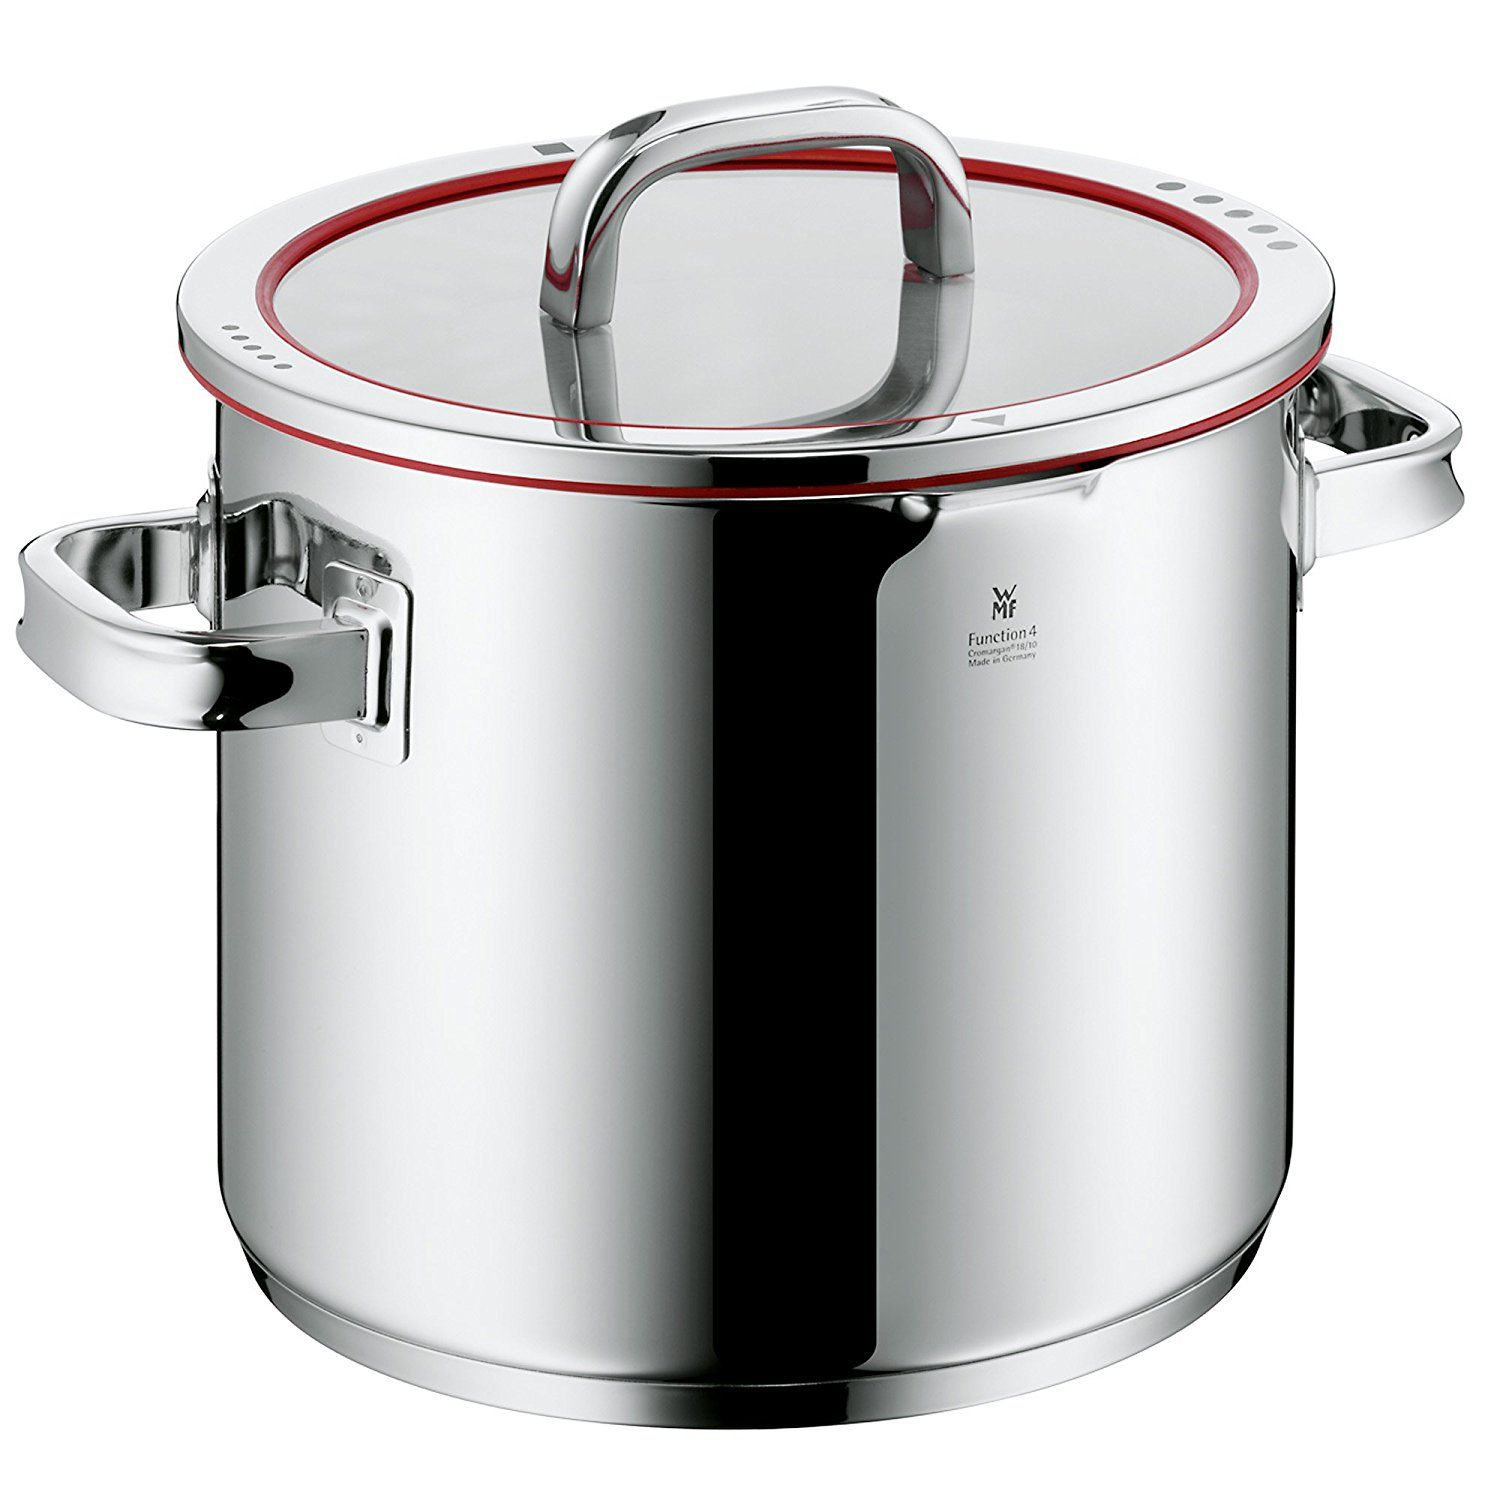 Wmf Function 4 Pasta Stock Pot With Lid 9 Quart You Can Find Out More Details At The Link Of The Image Kitchen Cookware Sets Cookware Set Kitchen Cookware